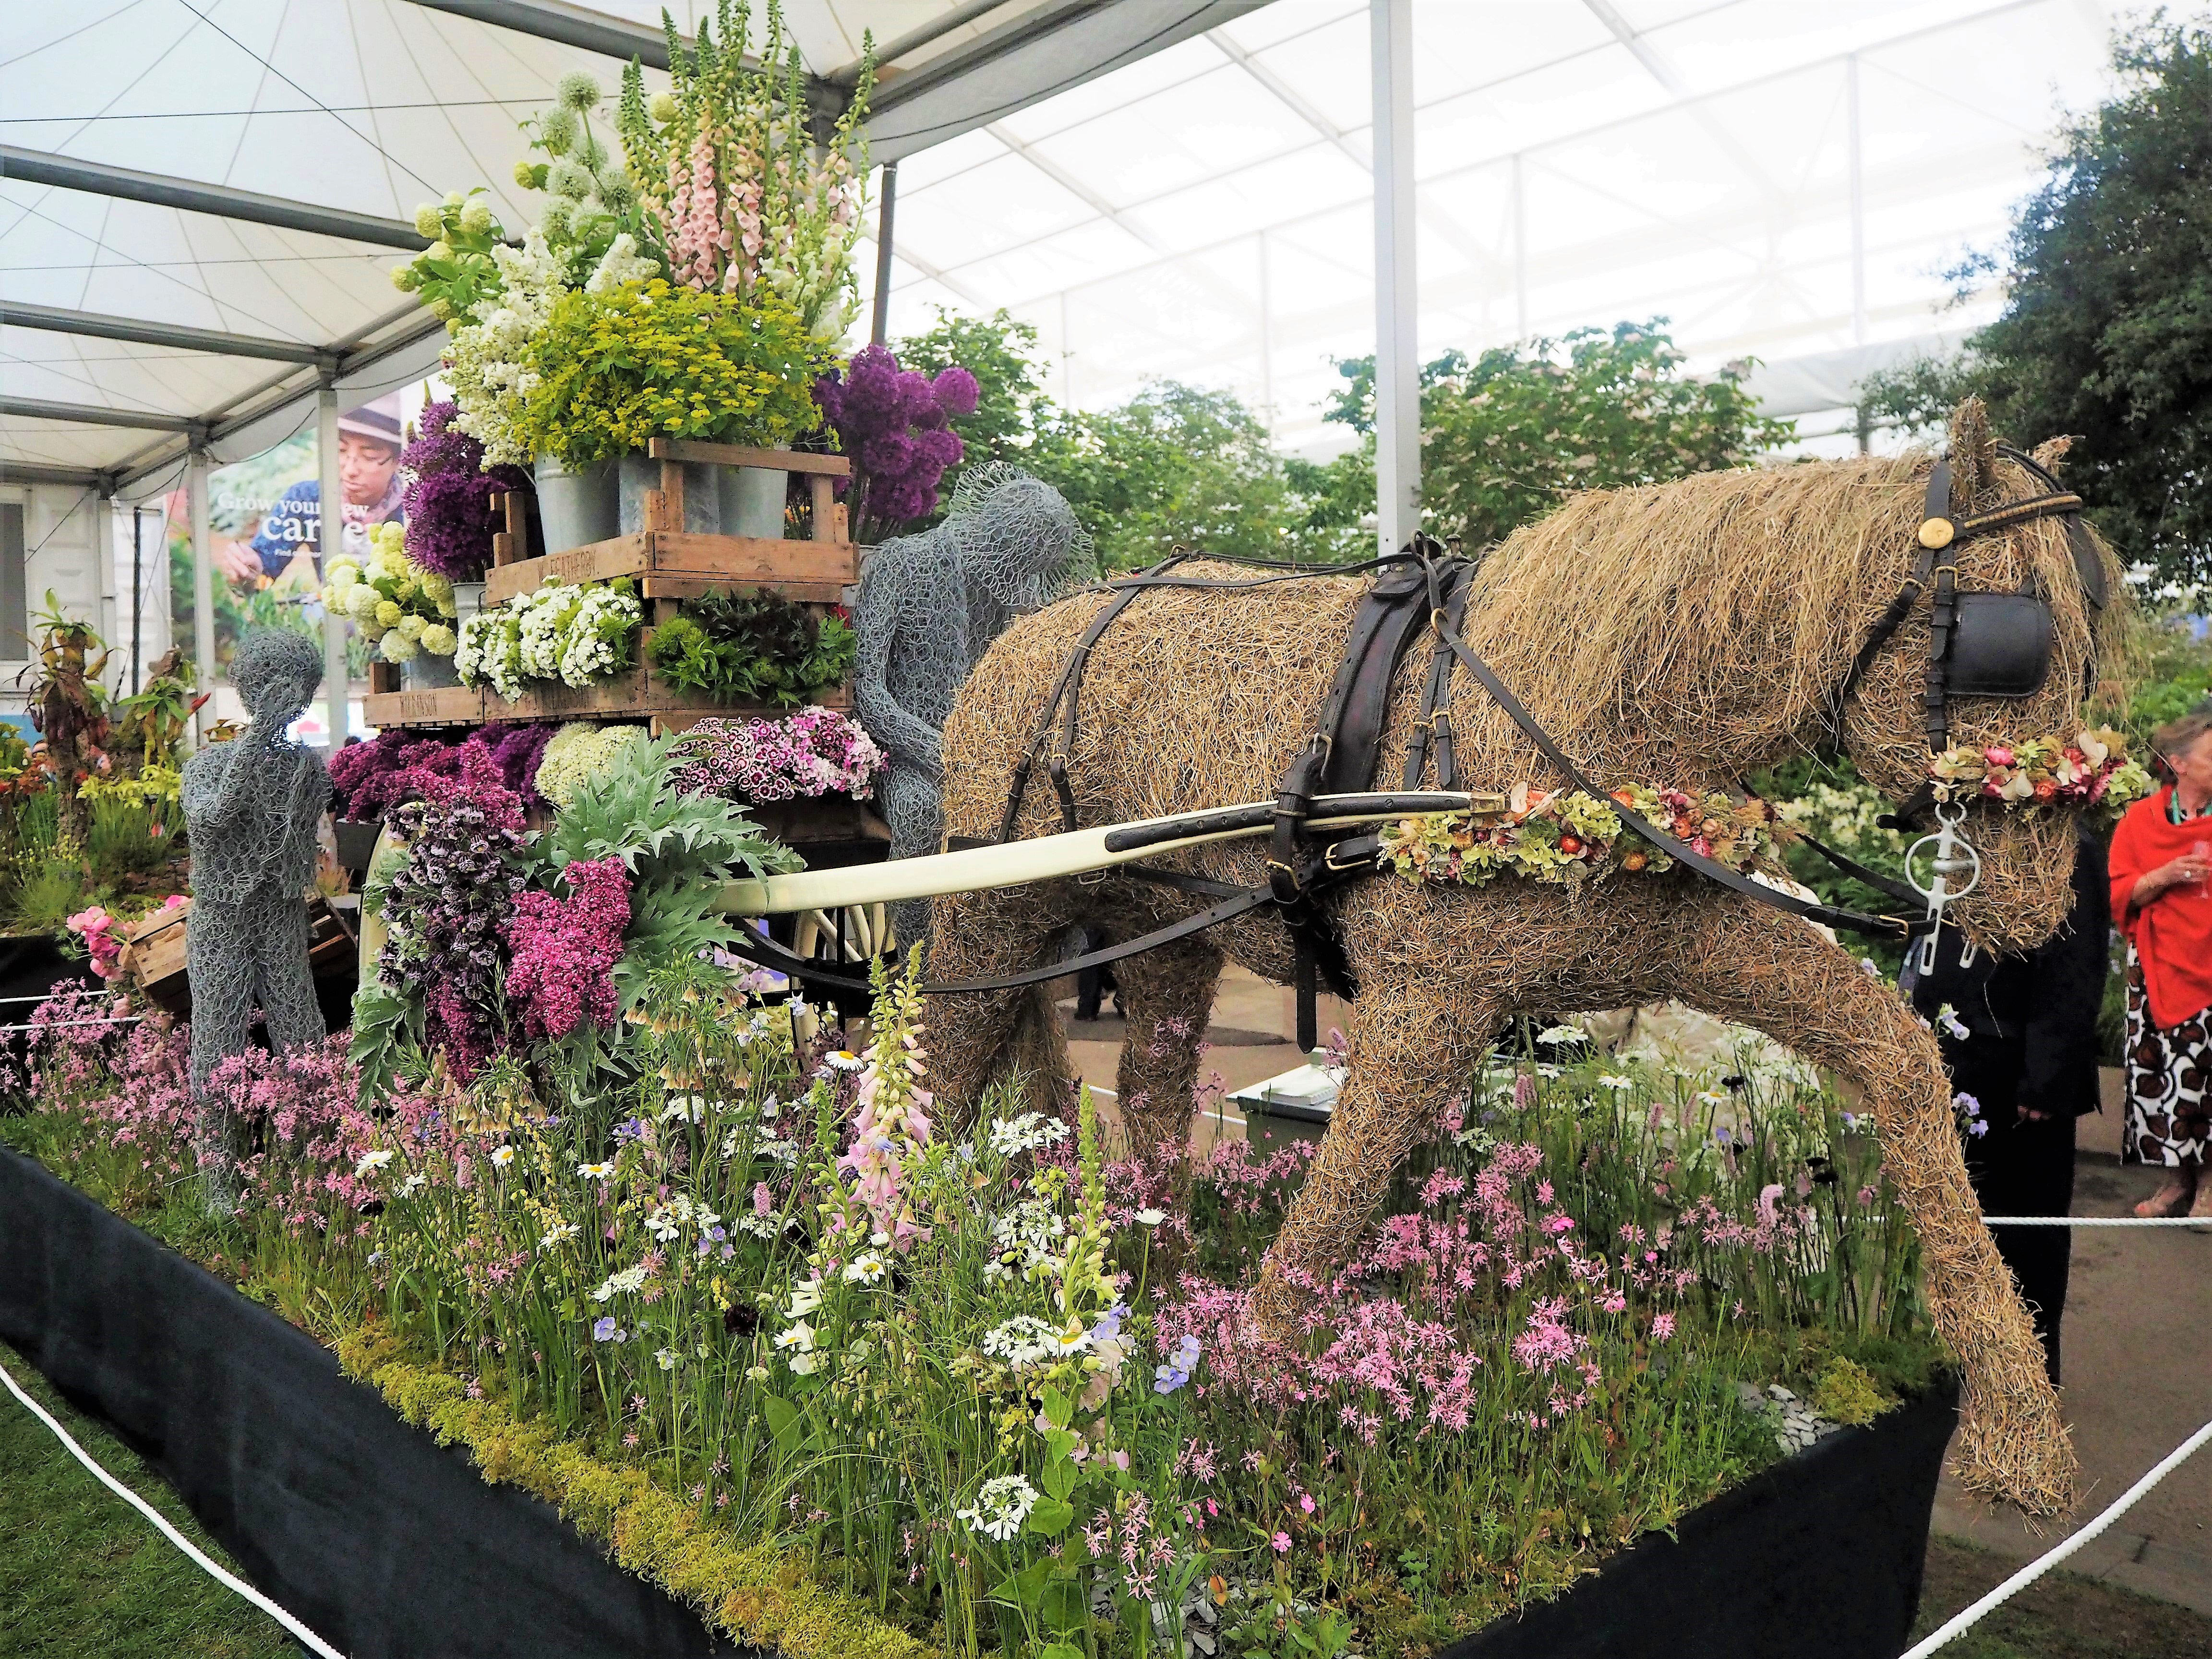 Flower display at Chelsea flower show 2018